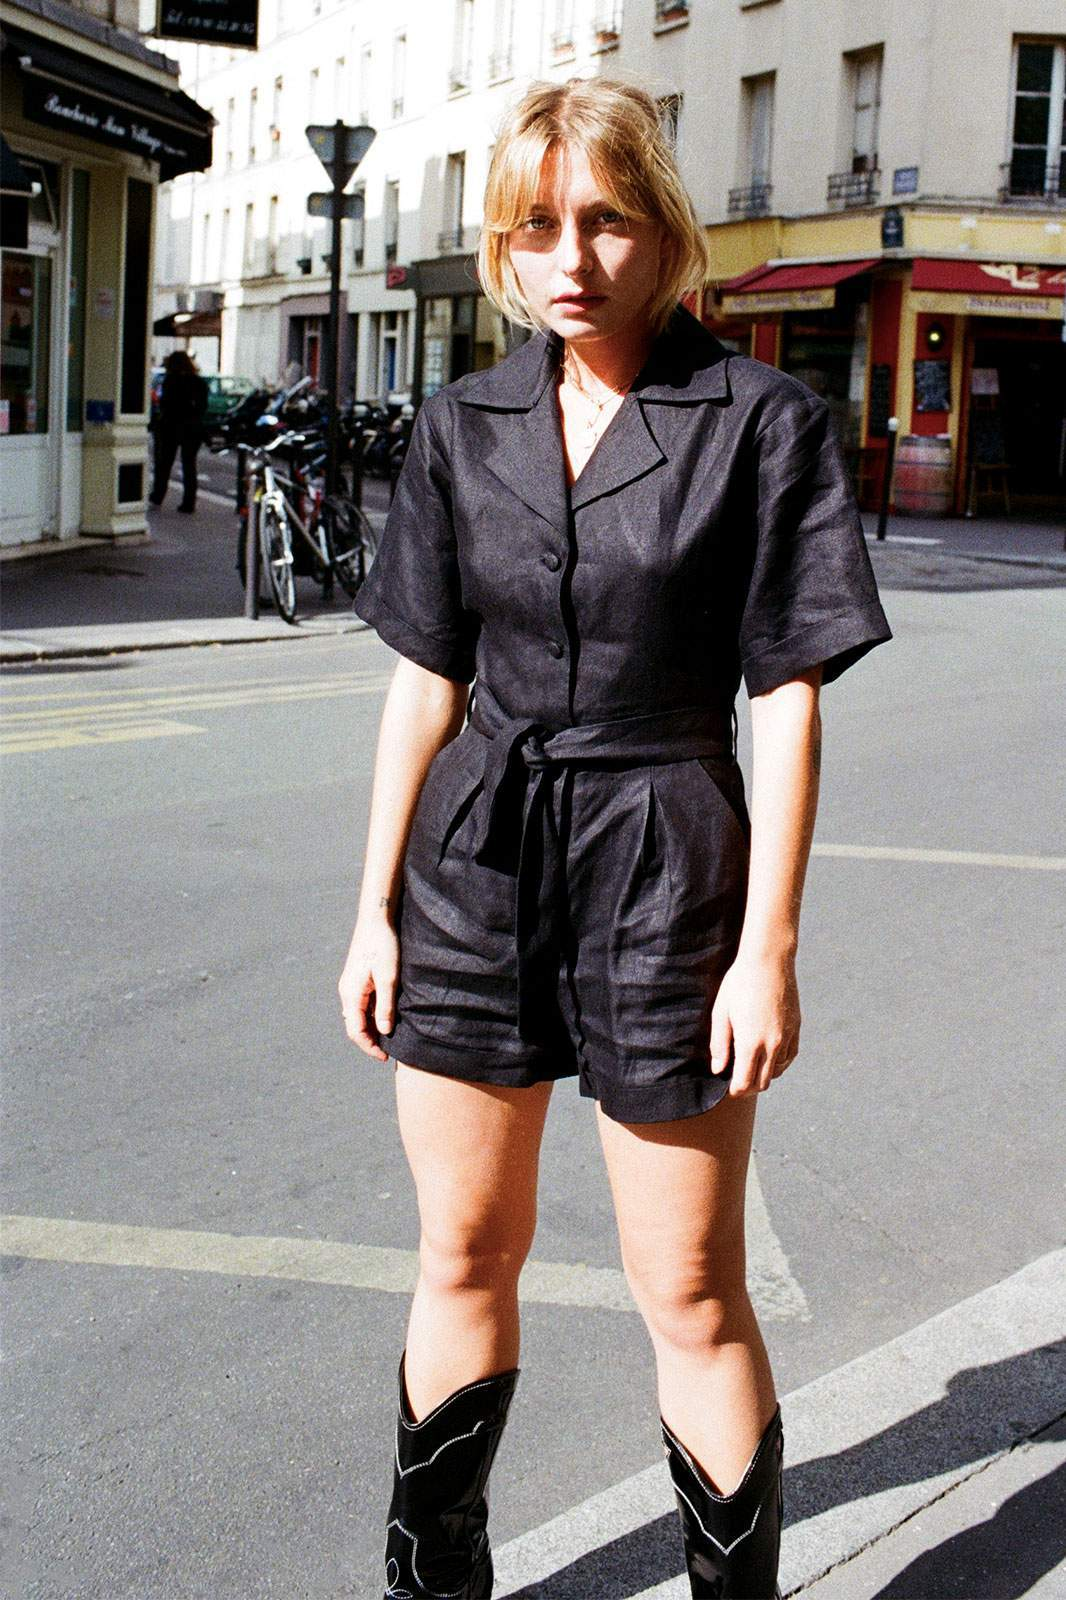 arkitaip Jumpsuits The Zey Short Boiler Suit in Black